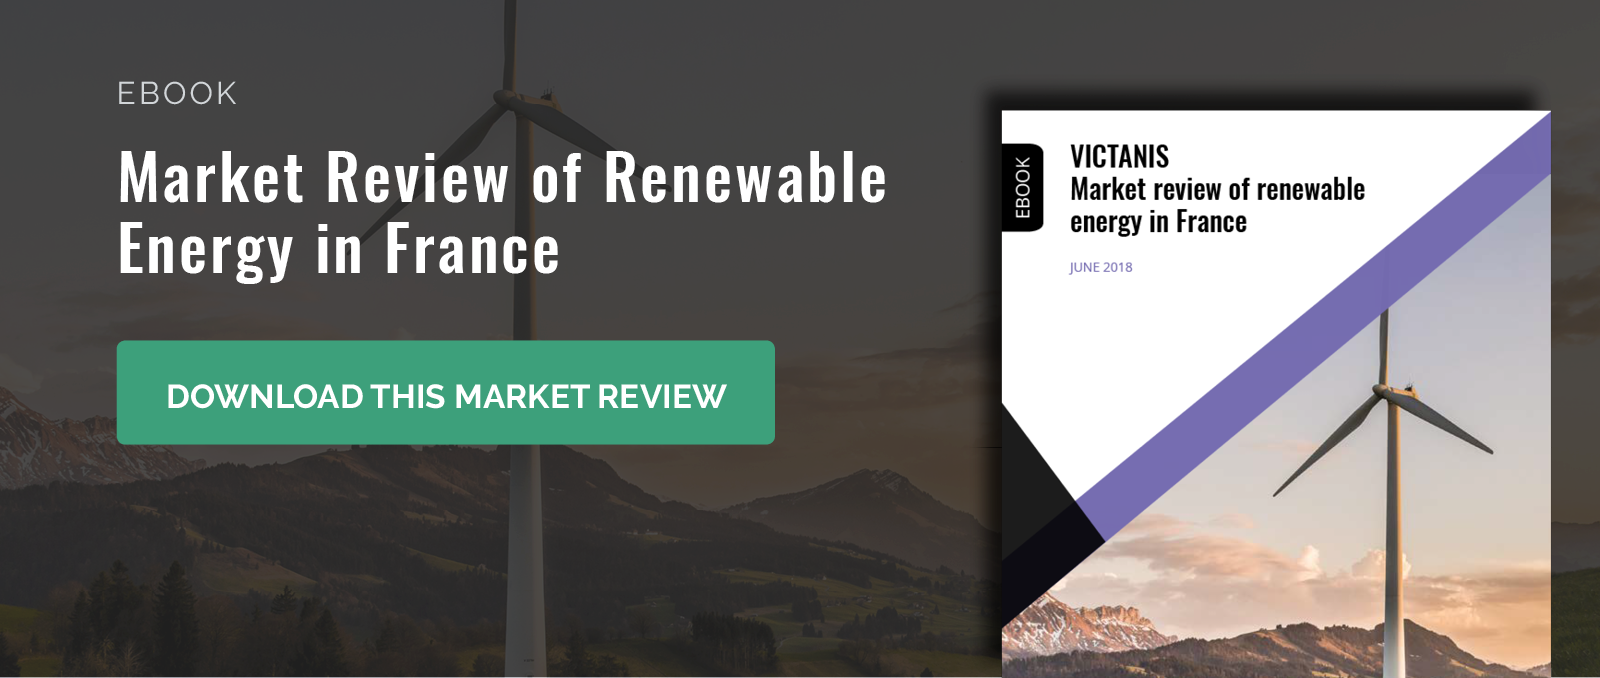 market-review-renewable-energy-in-france